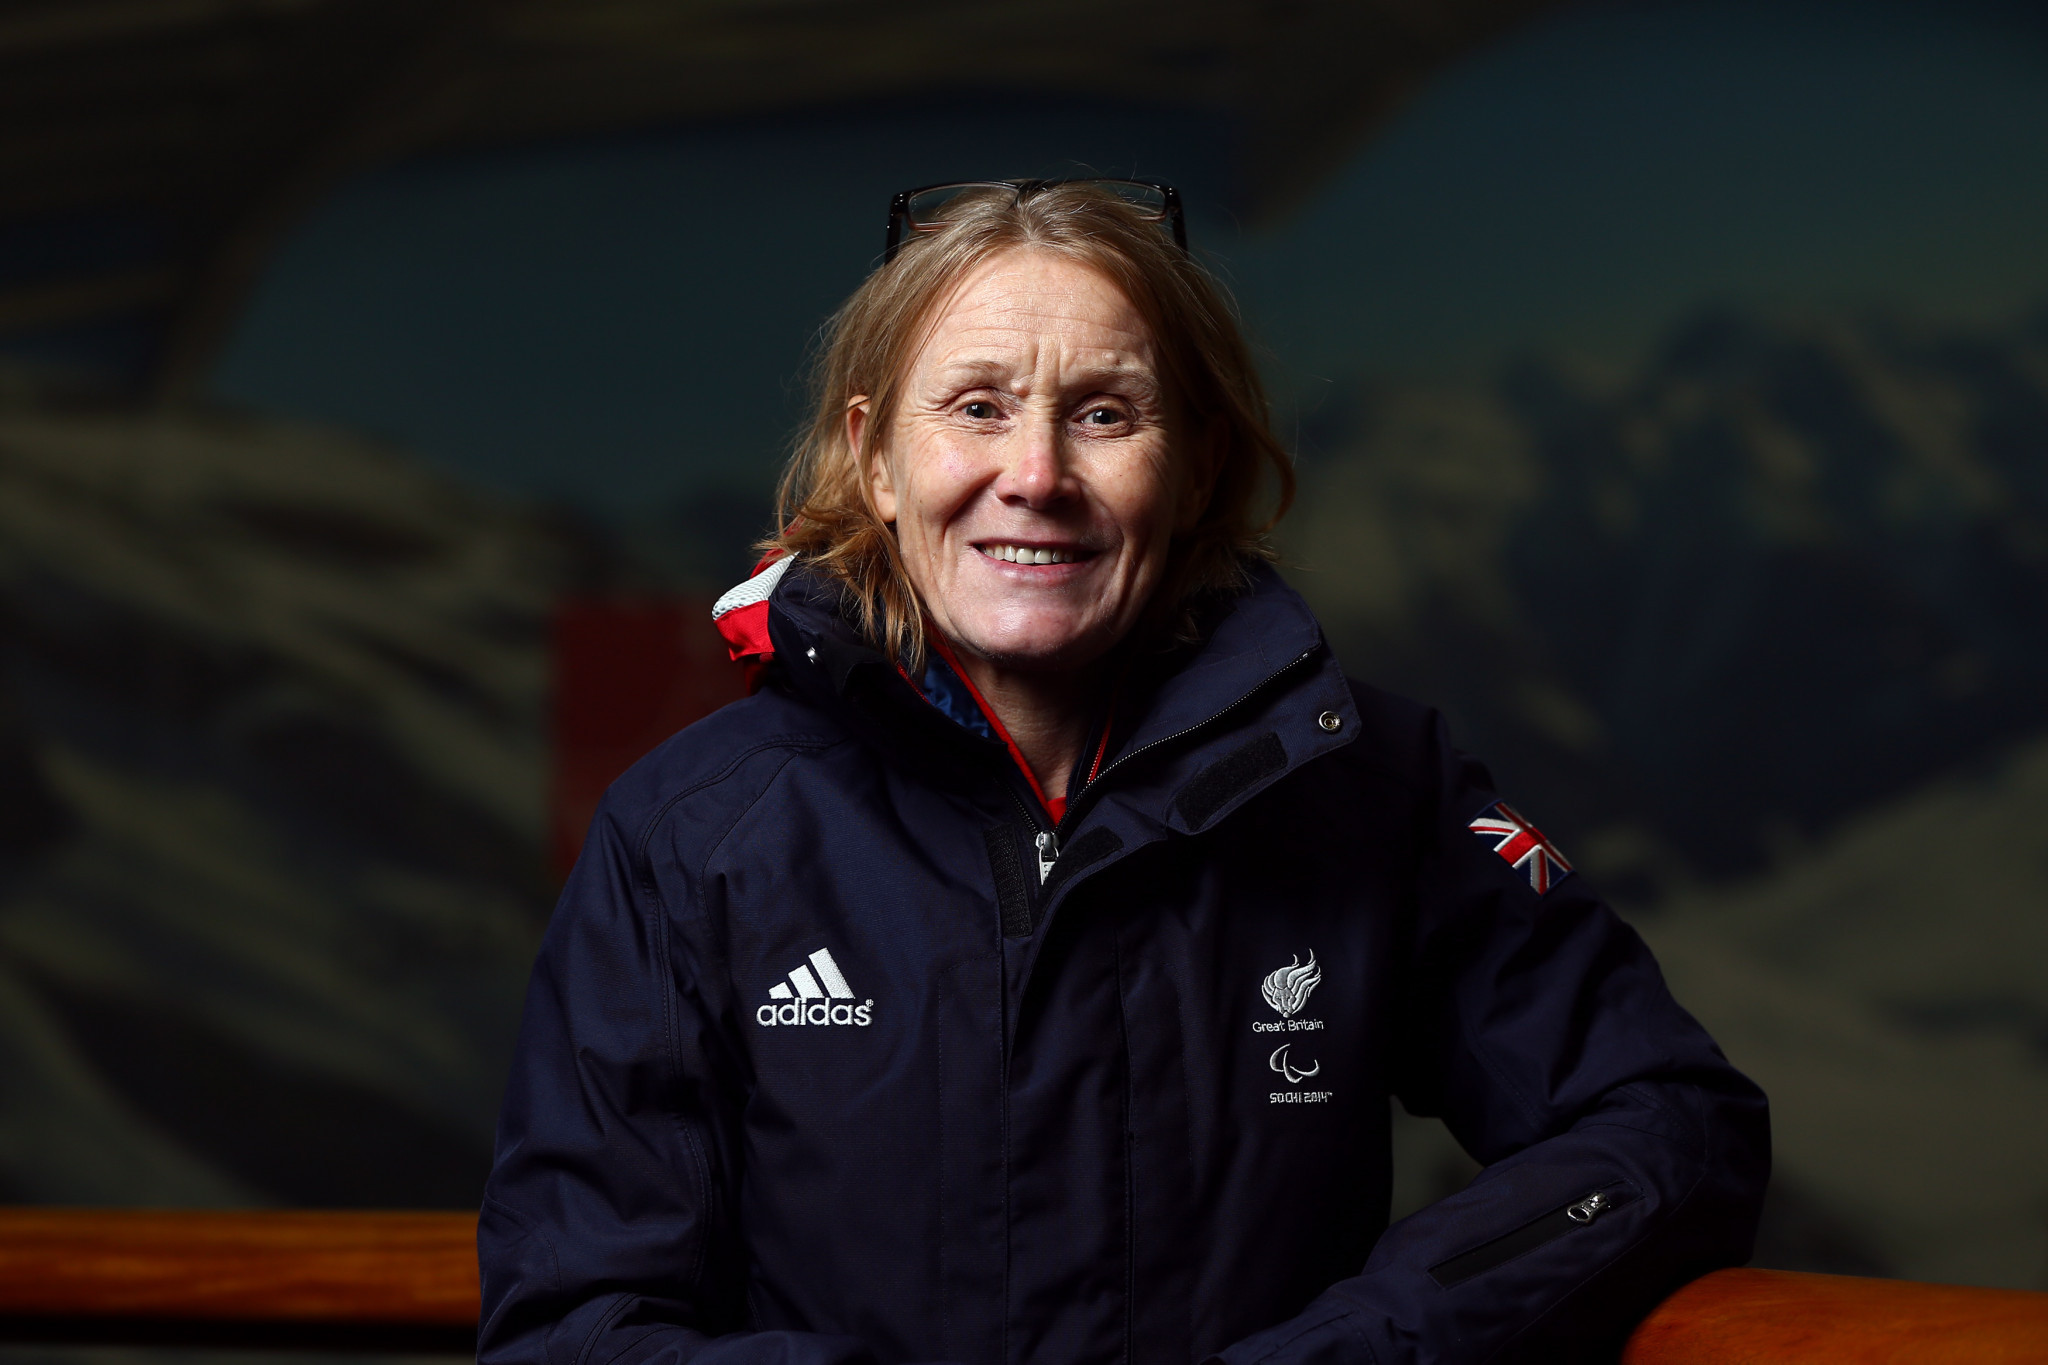 Penny Briscoe has led the British Paralympic team into three Paralympic Games ©Getty Images